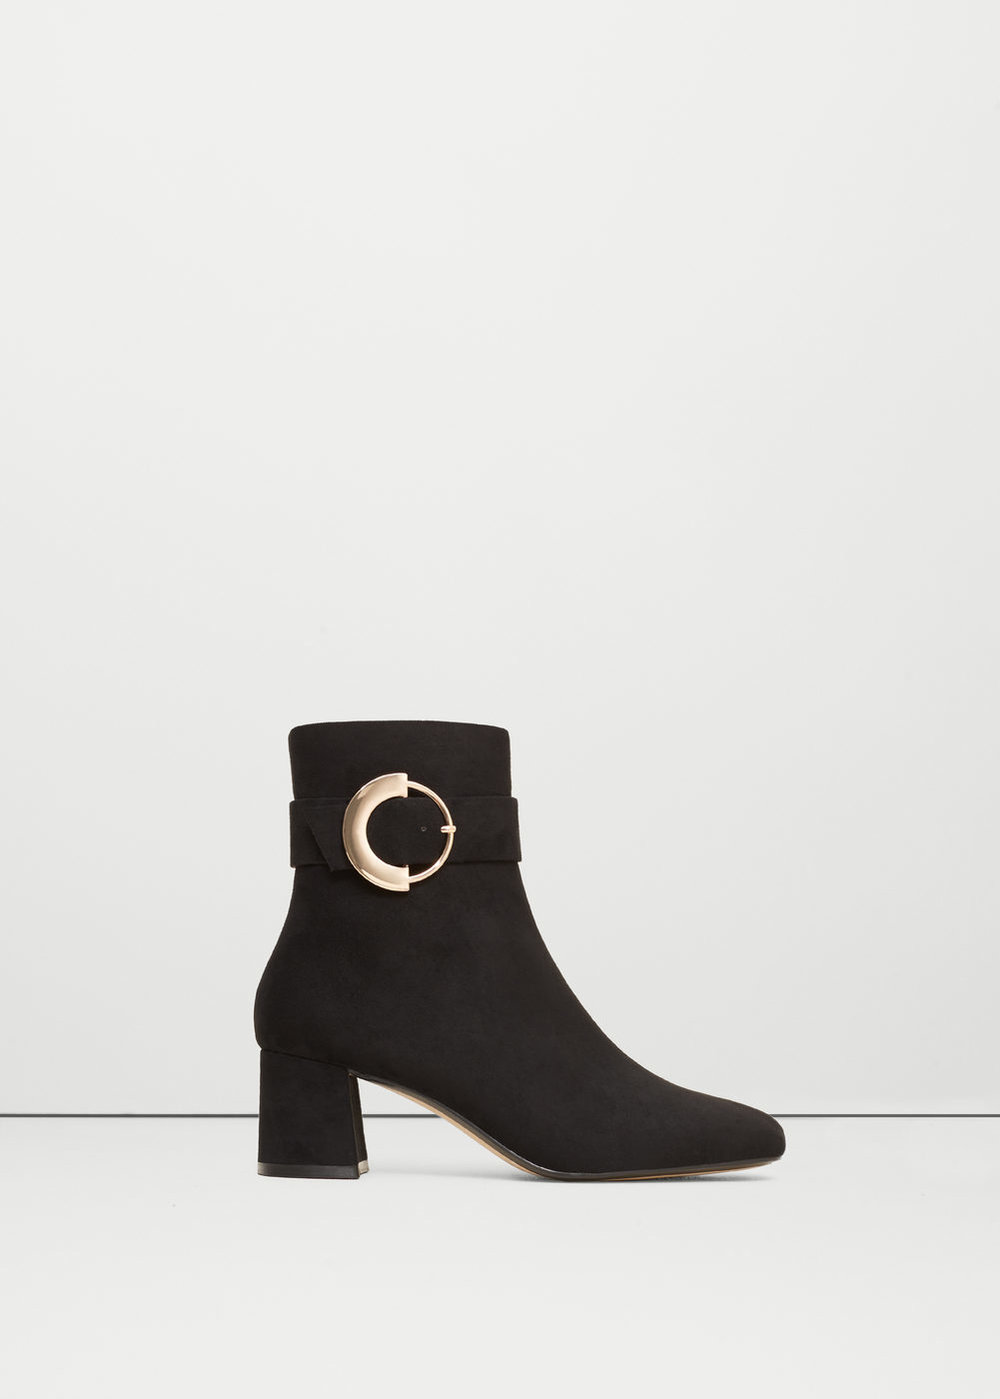 If you know me you know I love ankle boots, they're the only kind I wear these days because they're so cute on and   this buckle detail   is no different. Plus the heel isn't too high so they're wearable for everyday.